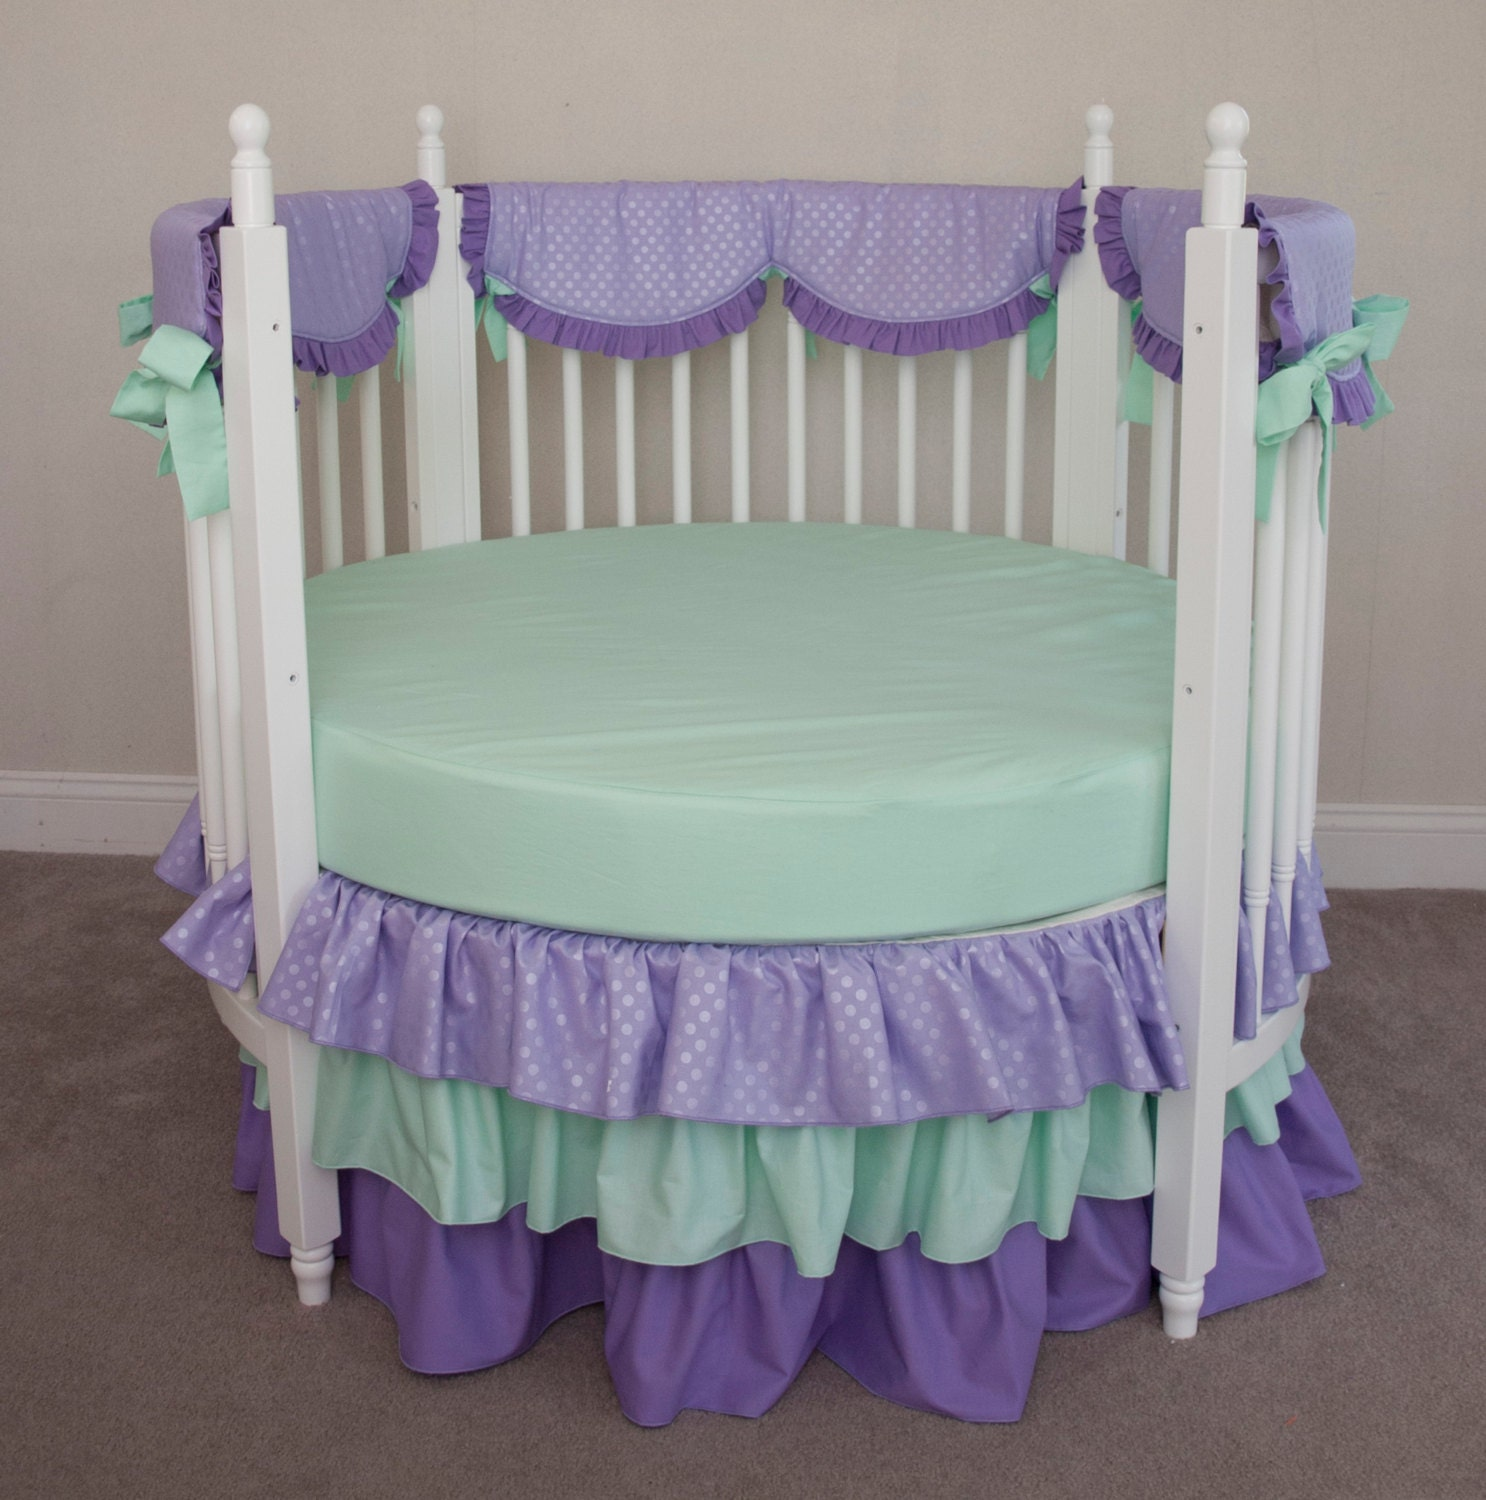 Baby cribs in ghana - Round Crib Bumperless Mint And Lavender Purple Designer Baby Girl Bedding With Rail Guard Covers